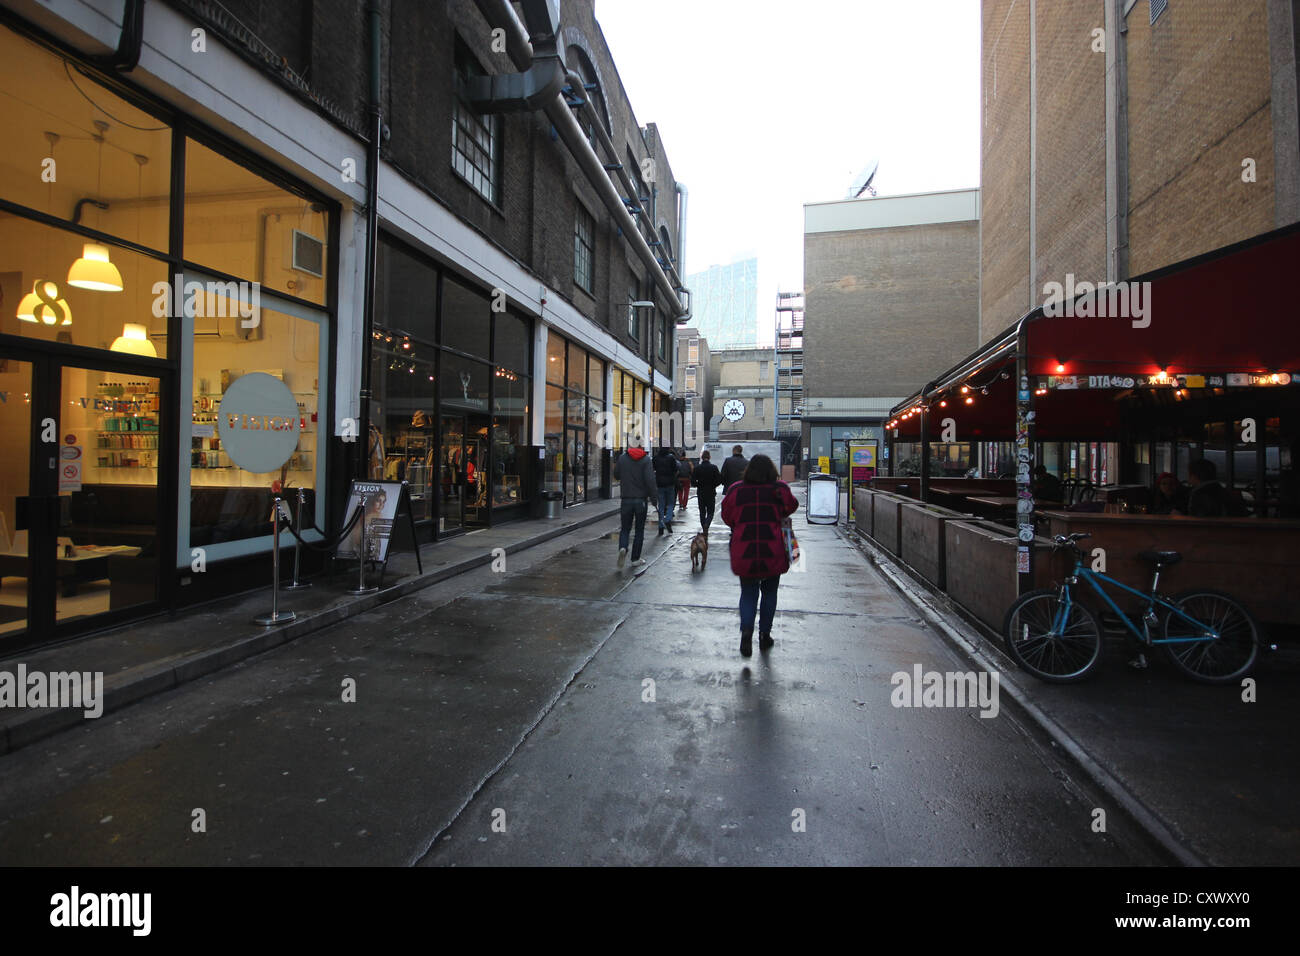 shoreditch, London, U.K. - Stock Image